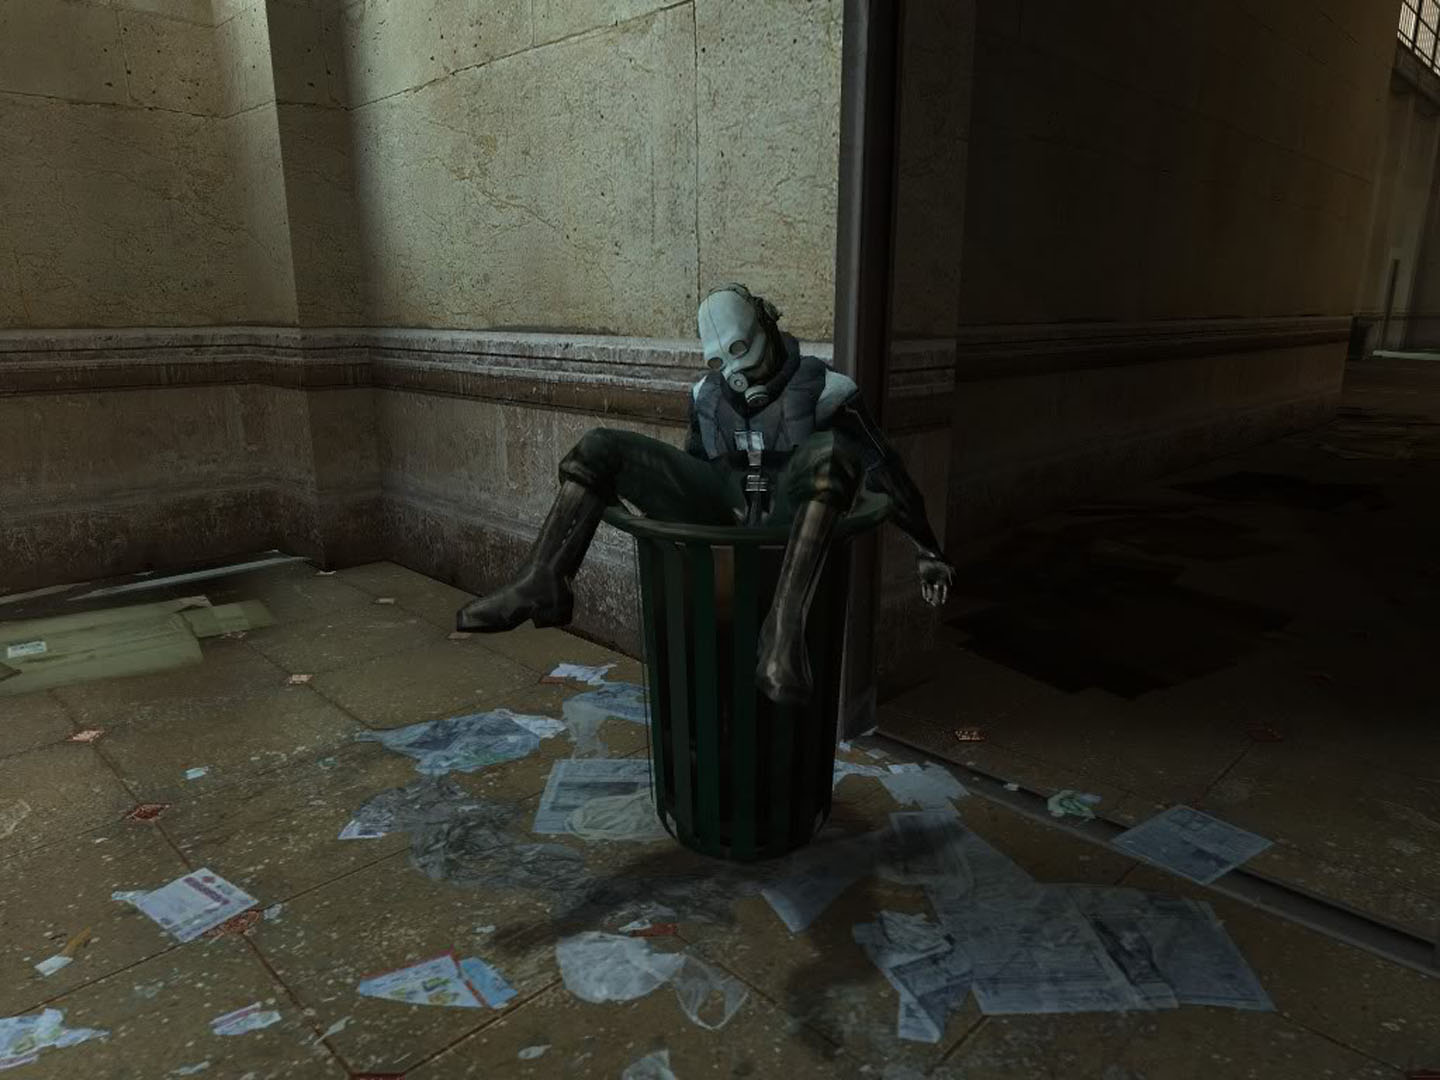 Half Life 2 Combine Wallpaper: Combine Soldier Dumped In The Trash